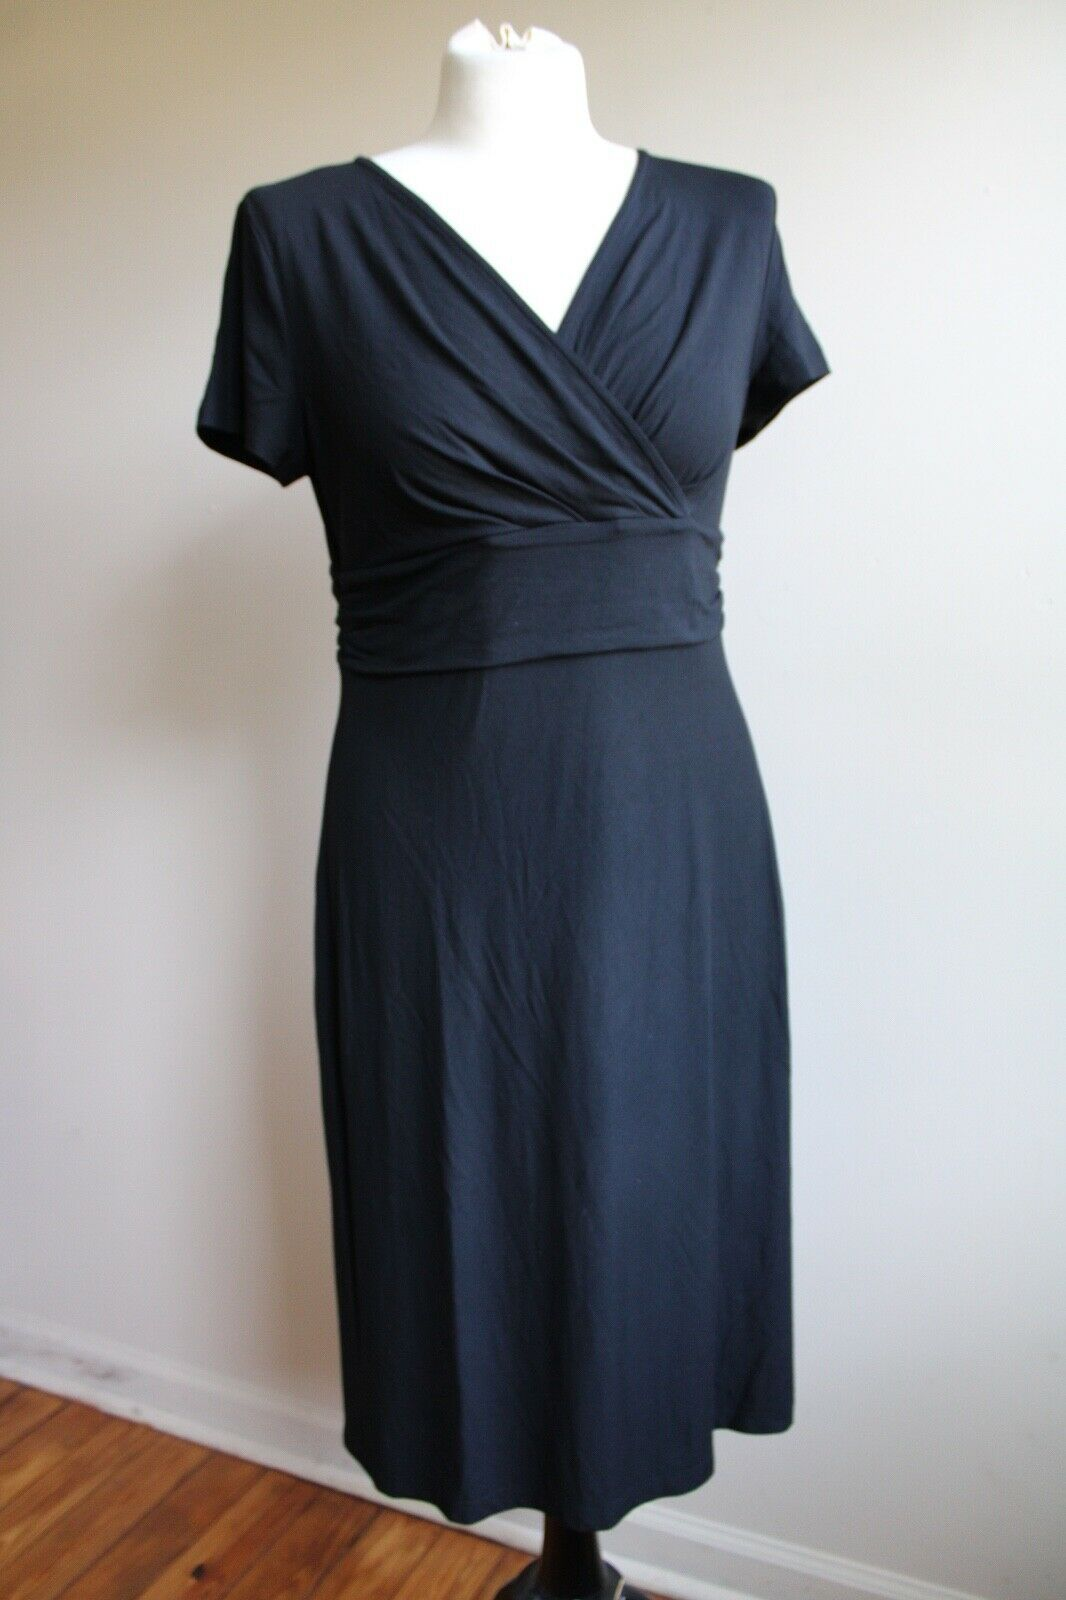 Primary image for Talbots MP Black Short Sleeve Wrap Top Stretch Jersey Dress